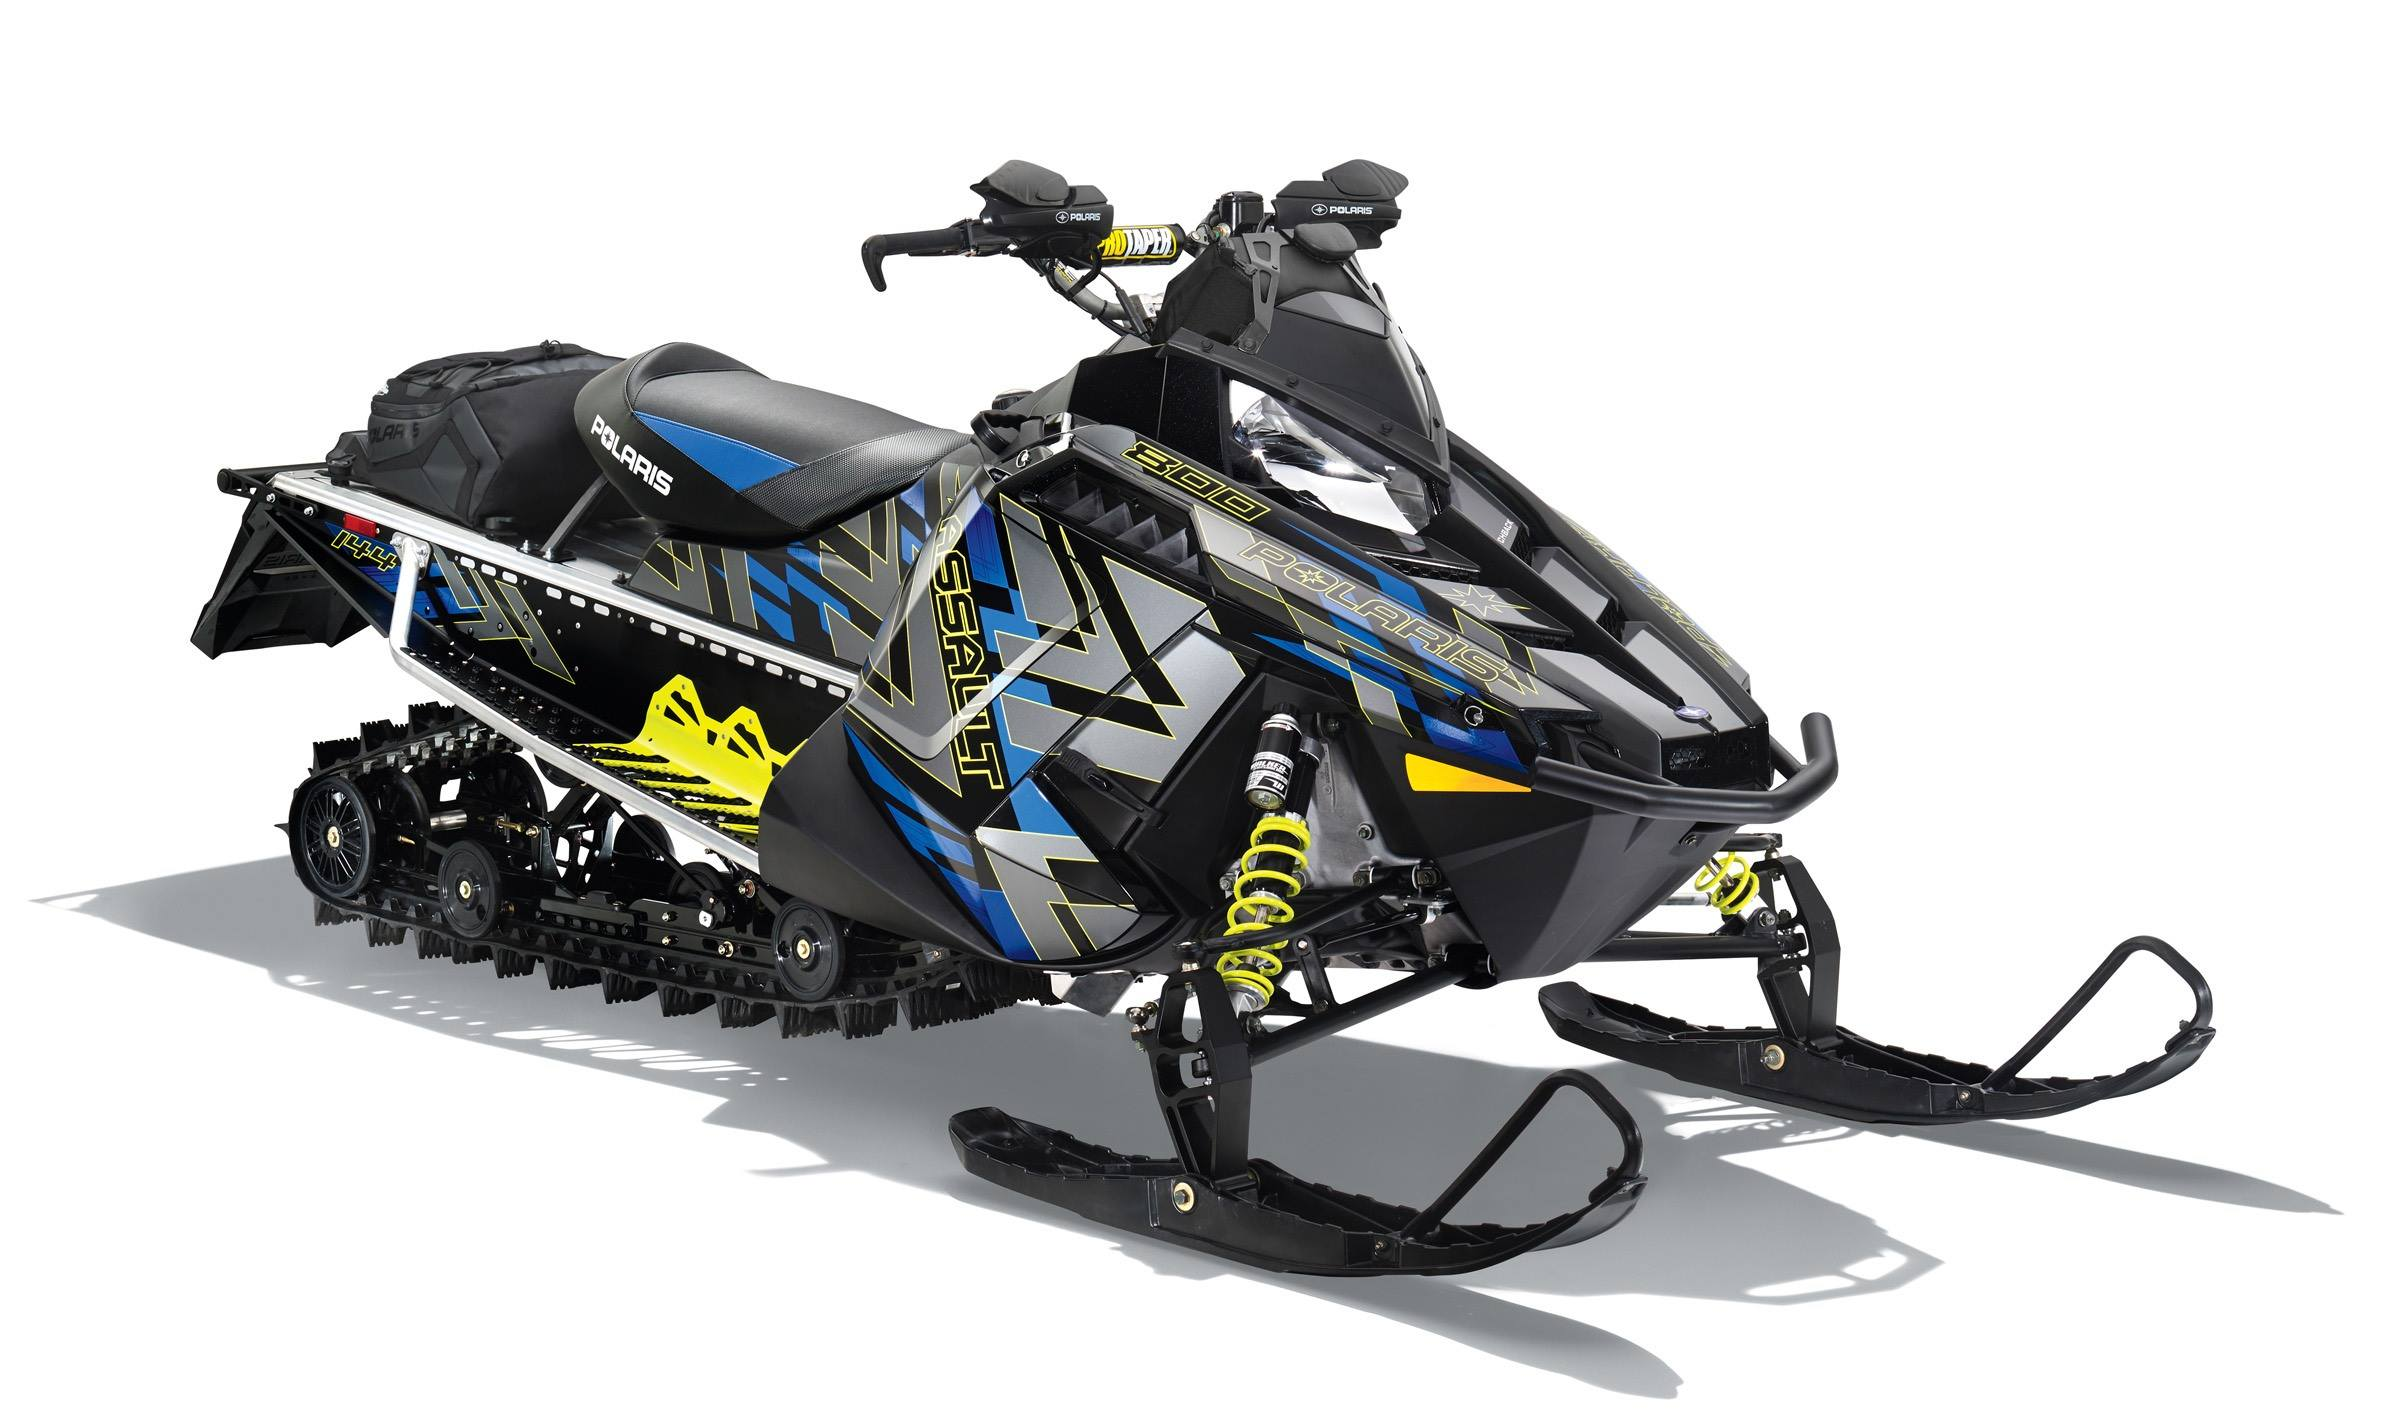 2016 Polaris 800 SWITCHBACK ASSAULT144 Terrain Dominator Series LE ES in Red Wing, Minnesota